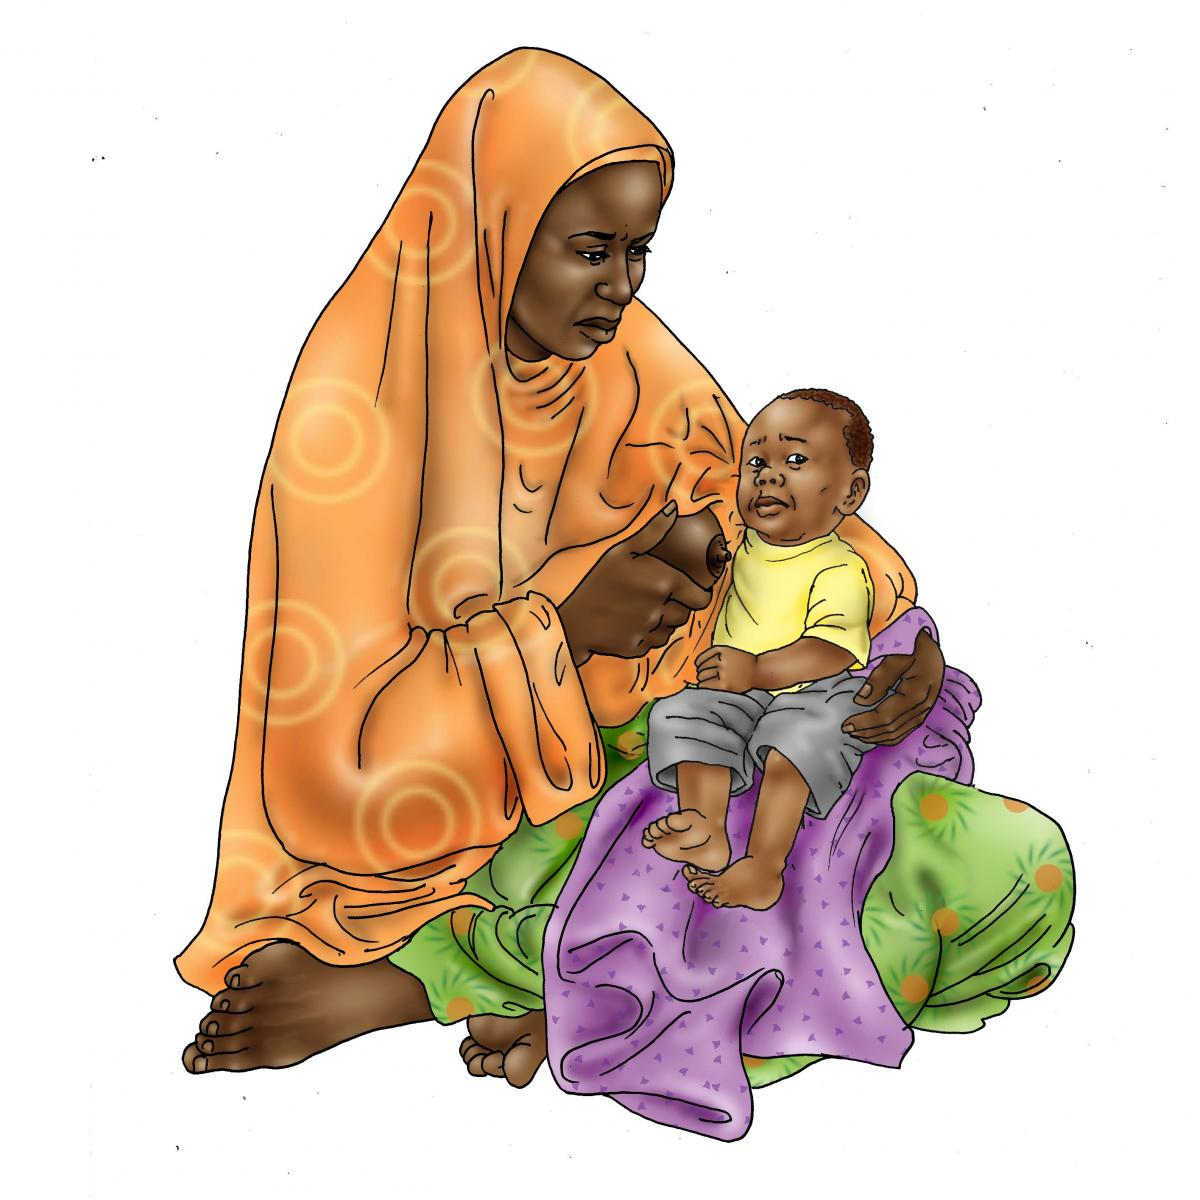 Sick Baby Nutrition - Sick baby refuses to breastfeed - 02 - Niger